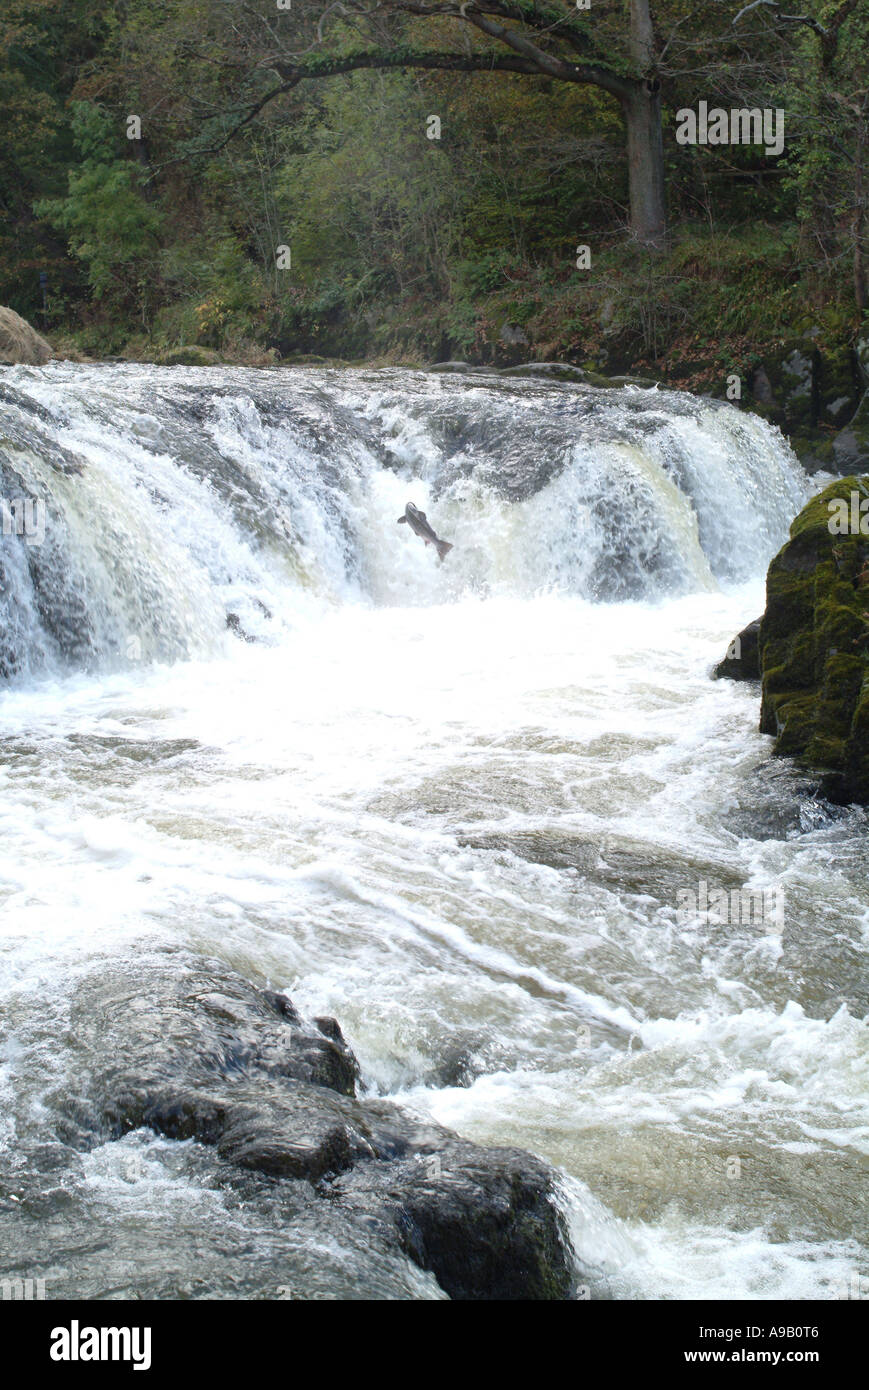 Salmon Leaping Cenarth Falls Carmarthenshire West Wales - Stock Image